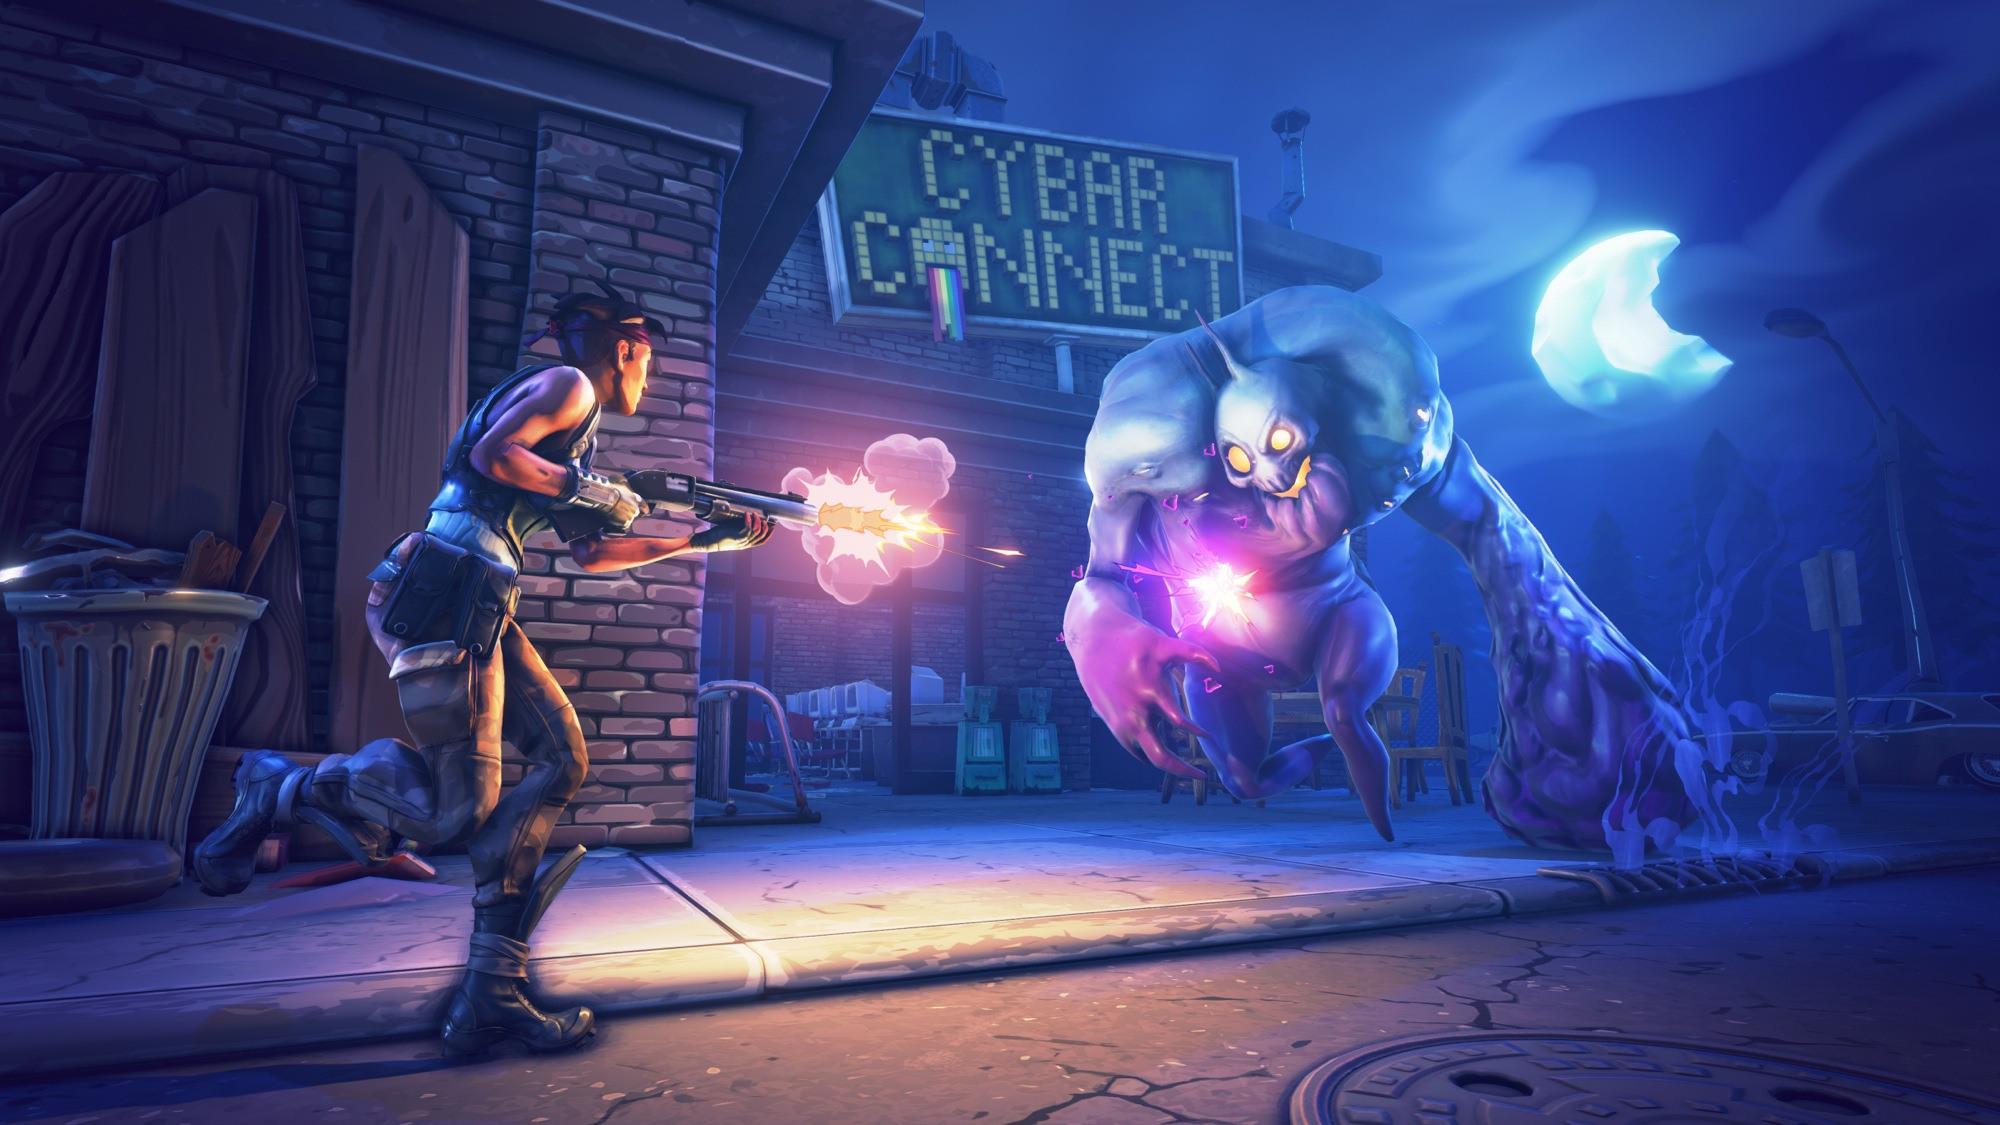 Fortnite will have server issues this week as Epic upgrades its servers screenshot